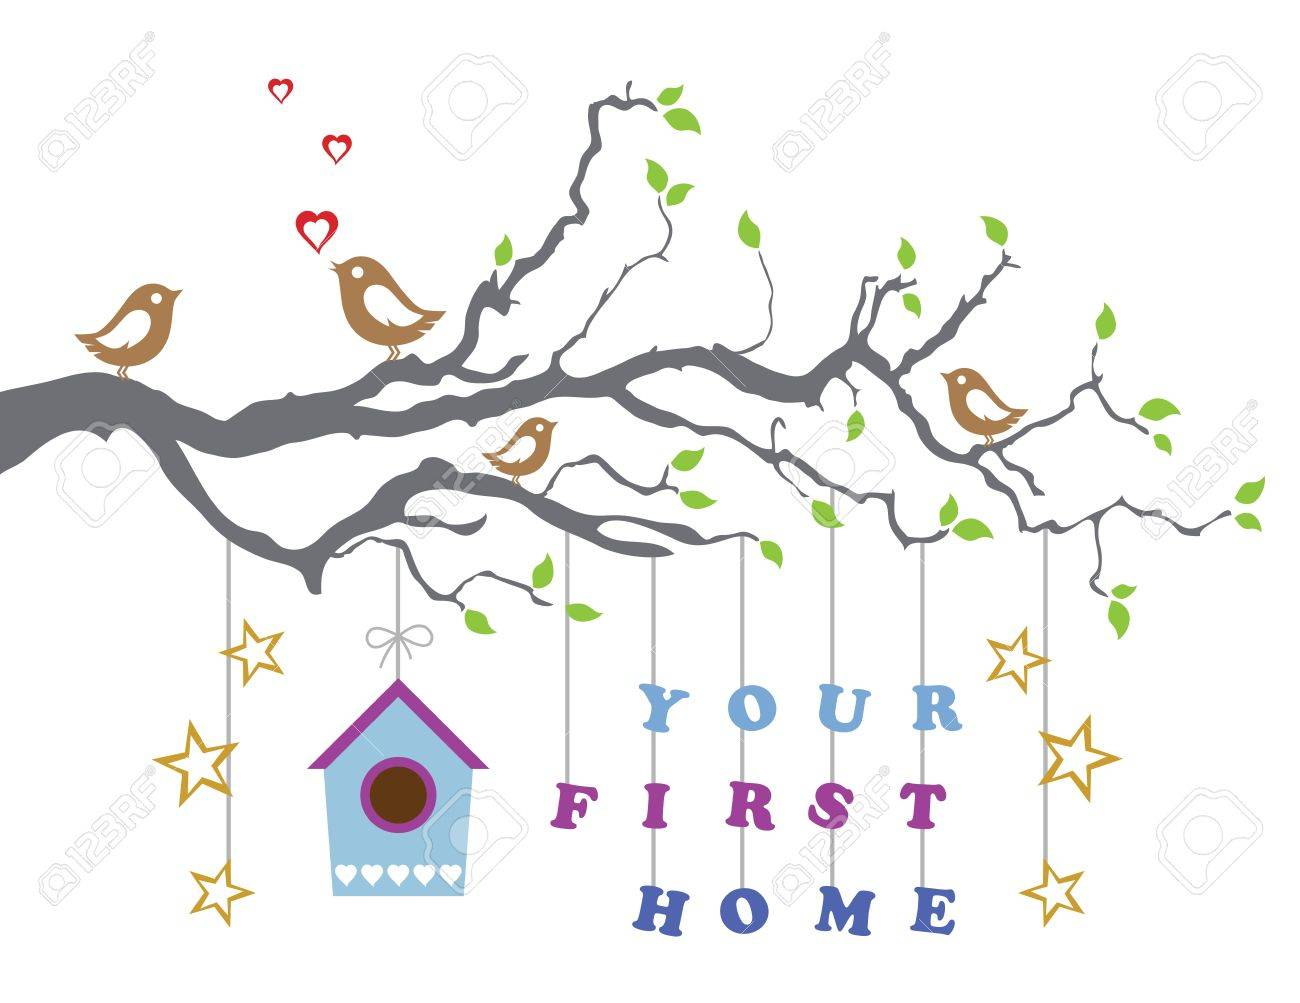 Your first home house moving.